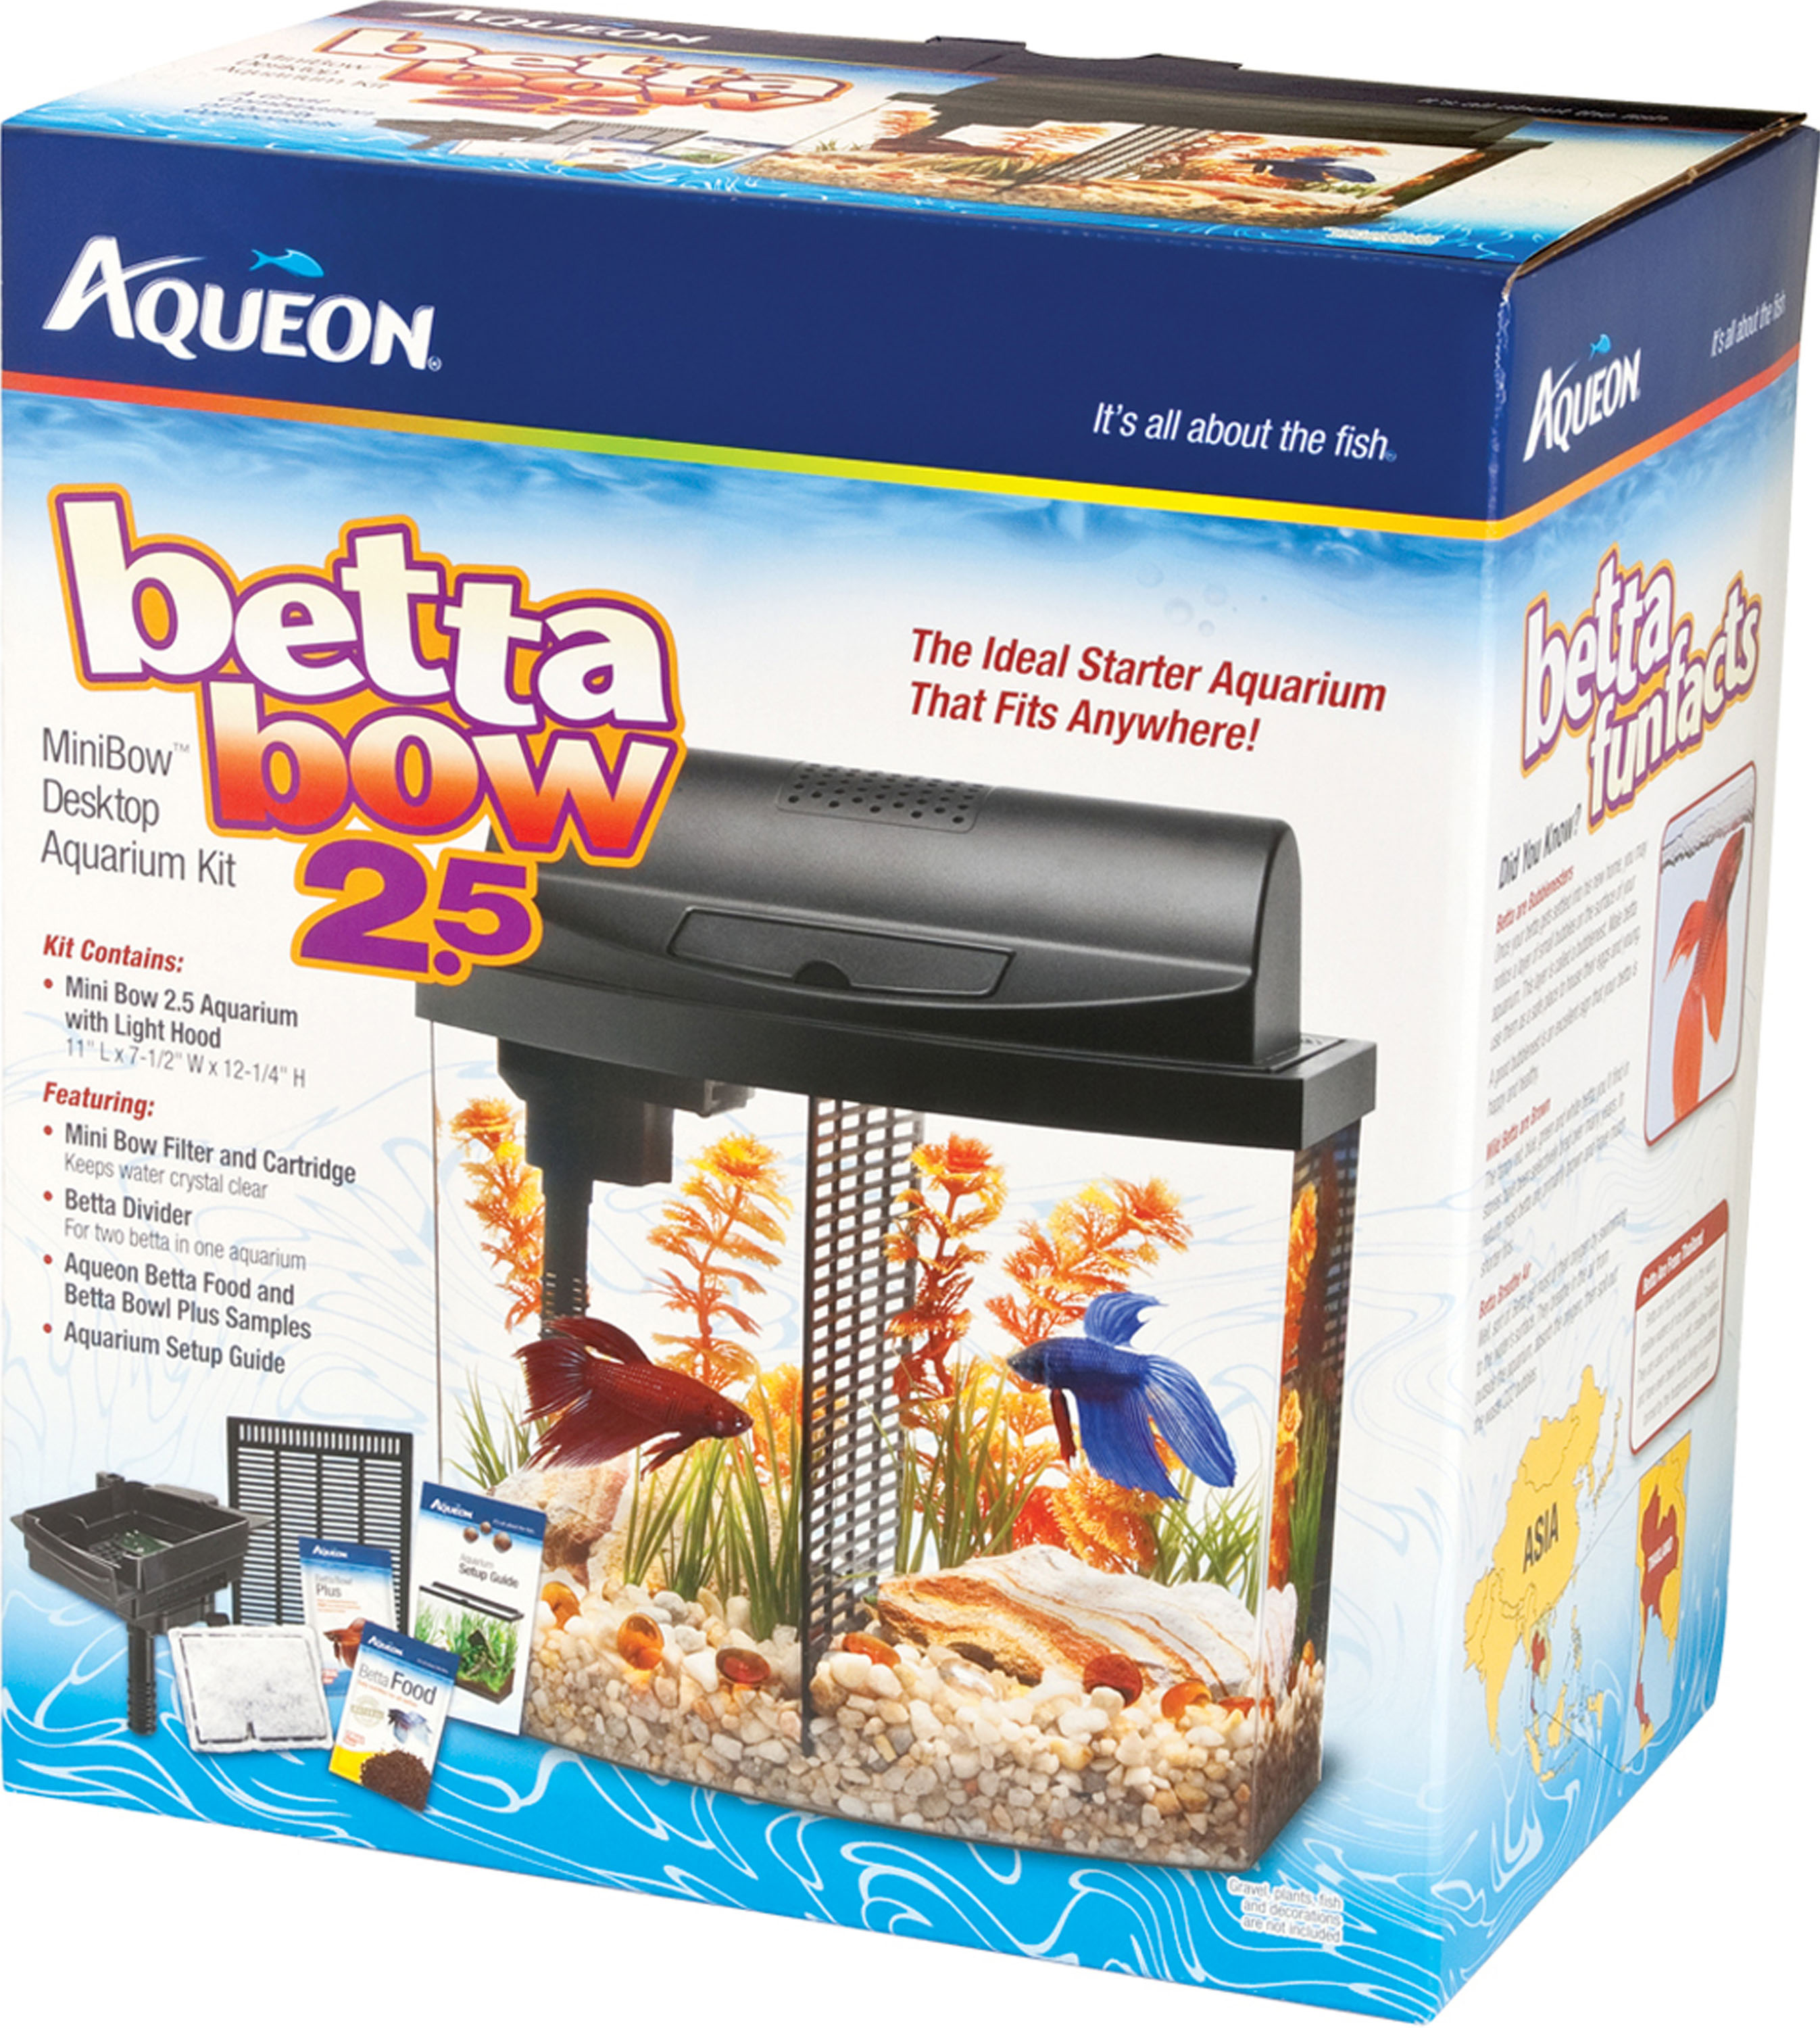 Aqueon BettaBow LED Fish Aquarium Starter Kit, 2.5 Gal by AQUEON PRODUCTS - GLASS